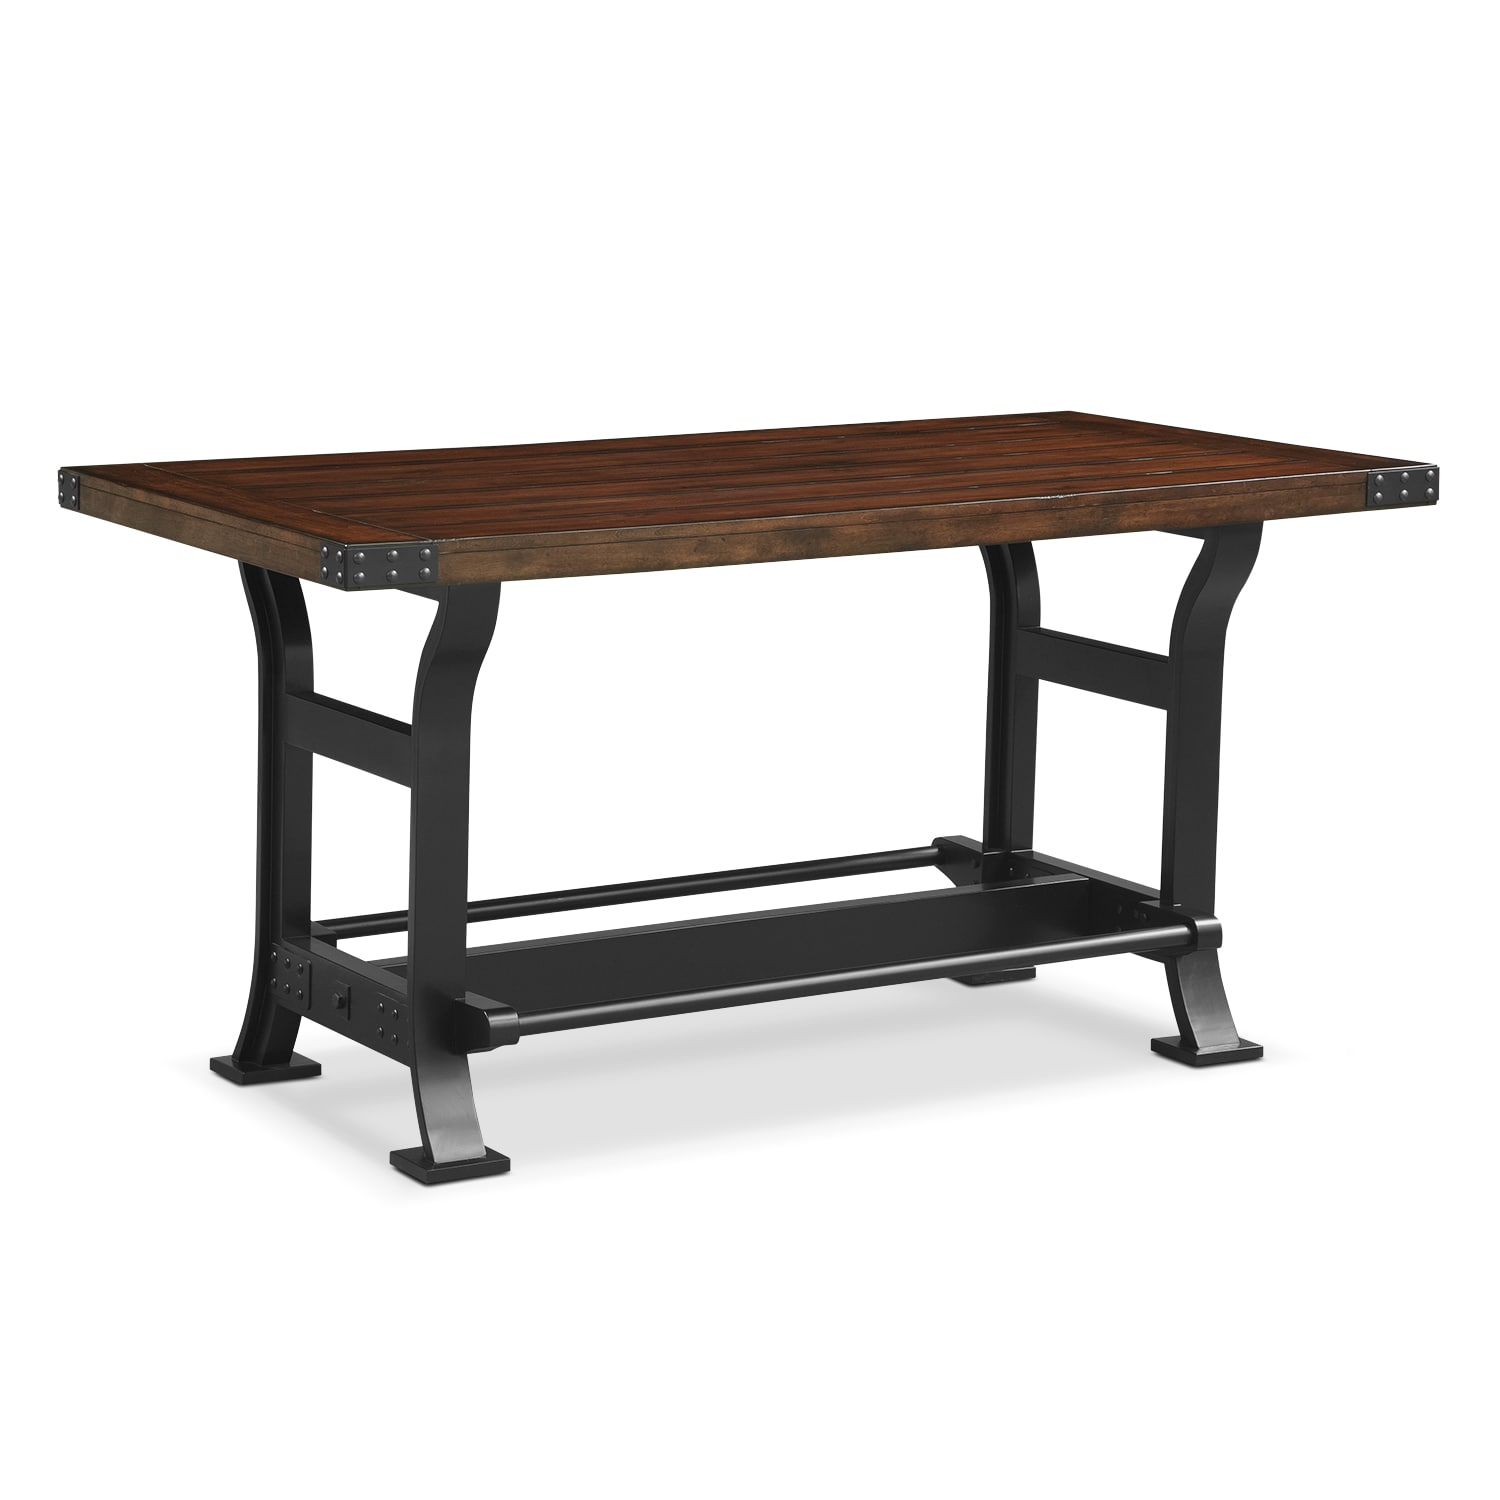 Newcastle Counter Height Dining Table Mahogany Value  : 433263 from www.valuecityfurniture.com size 1500 x 1500 jpeg 115kB